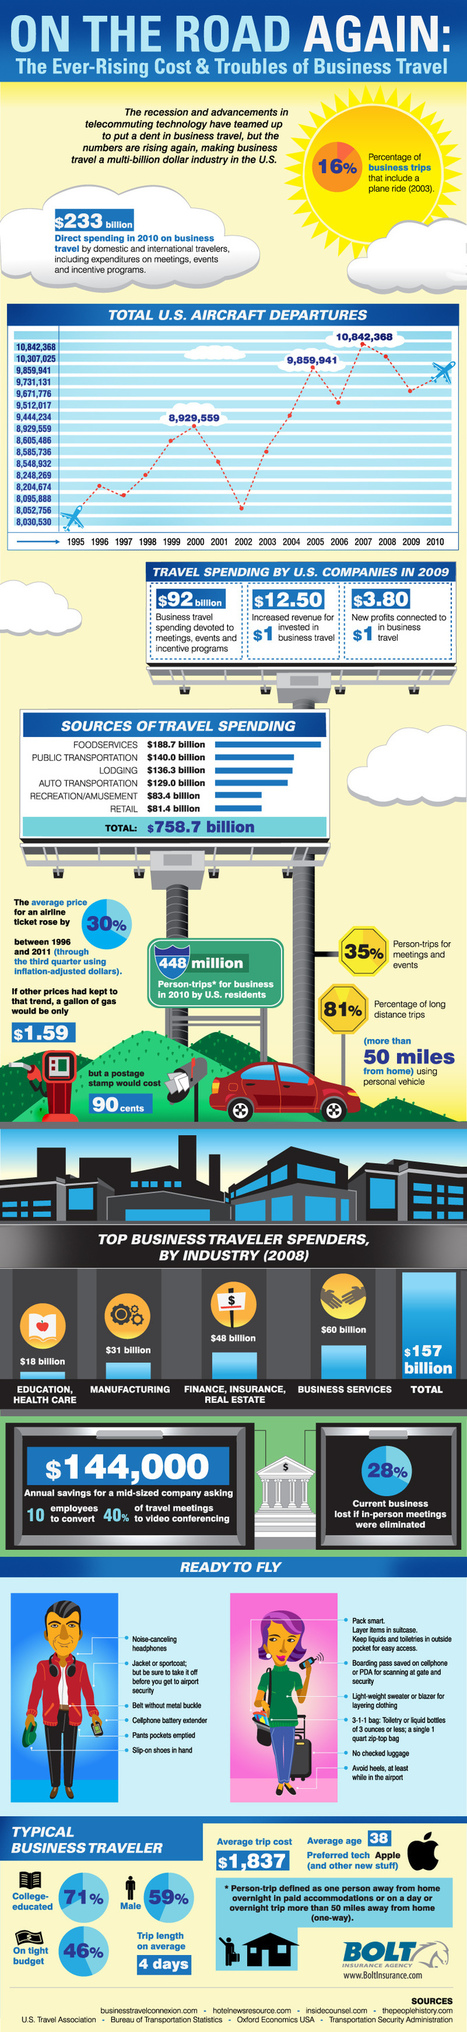 business_travel_costs_infographic.jpg (801x3485 pixels) | Travel & Expense | Scoop.it